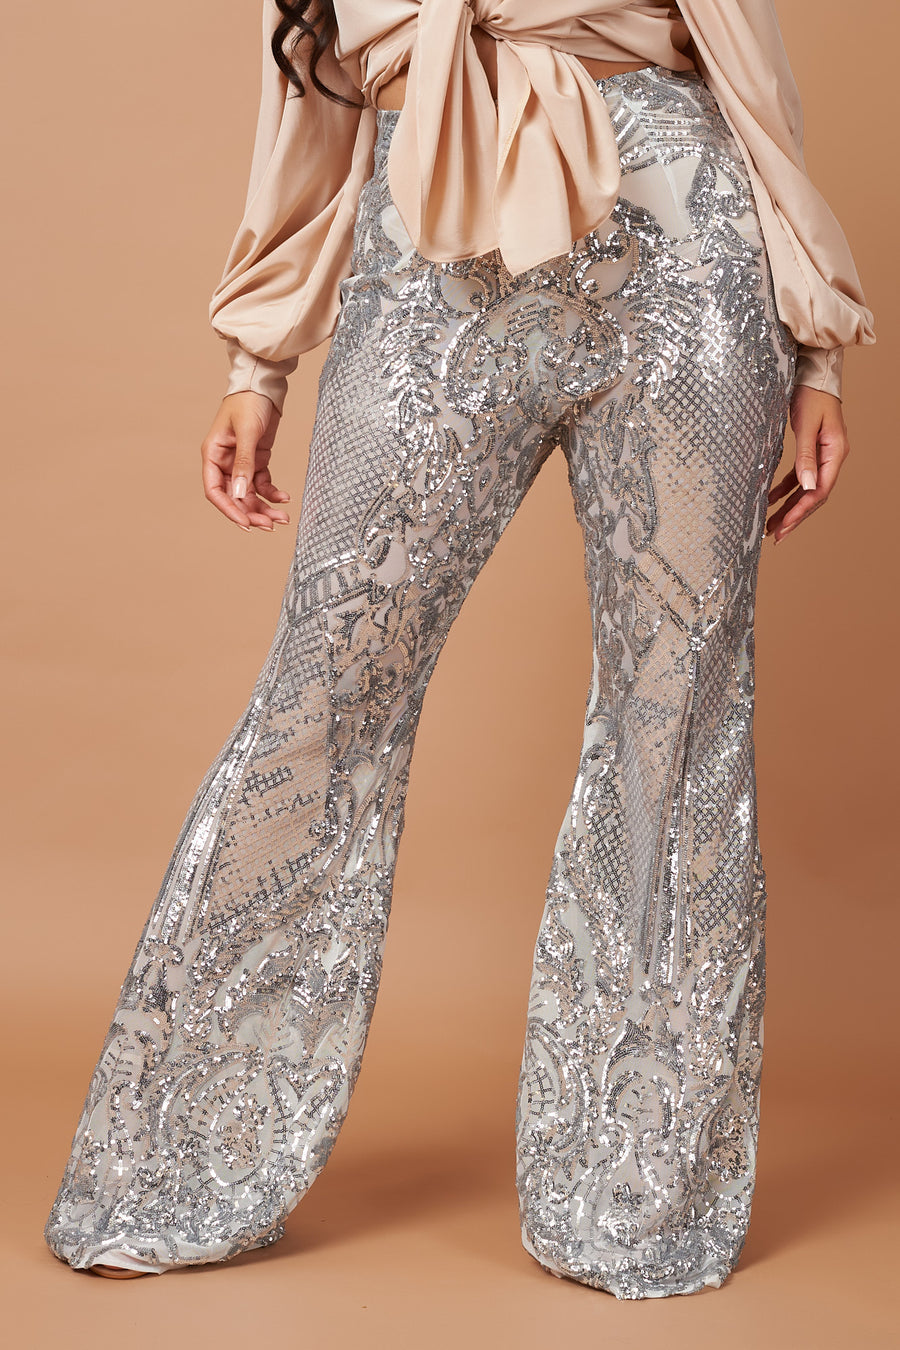 Silver Baroque Sequin Flares - SALE - Size 18 Length 48